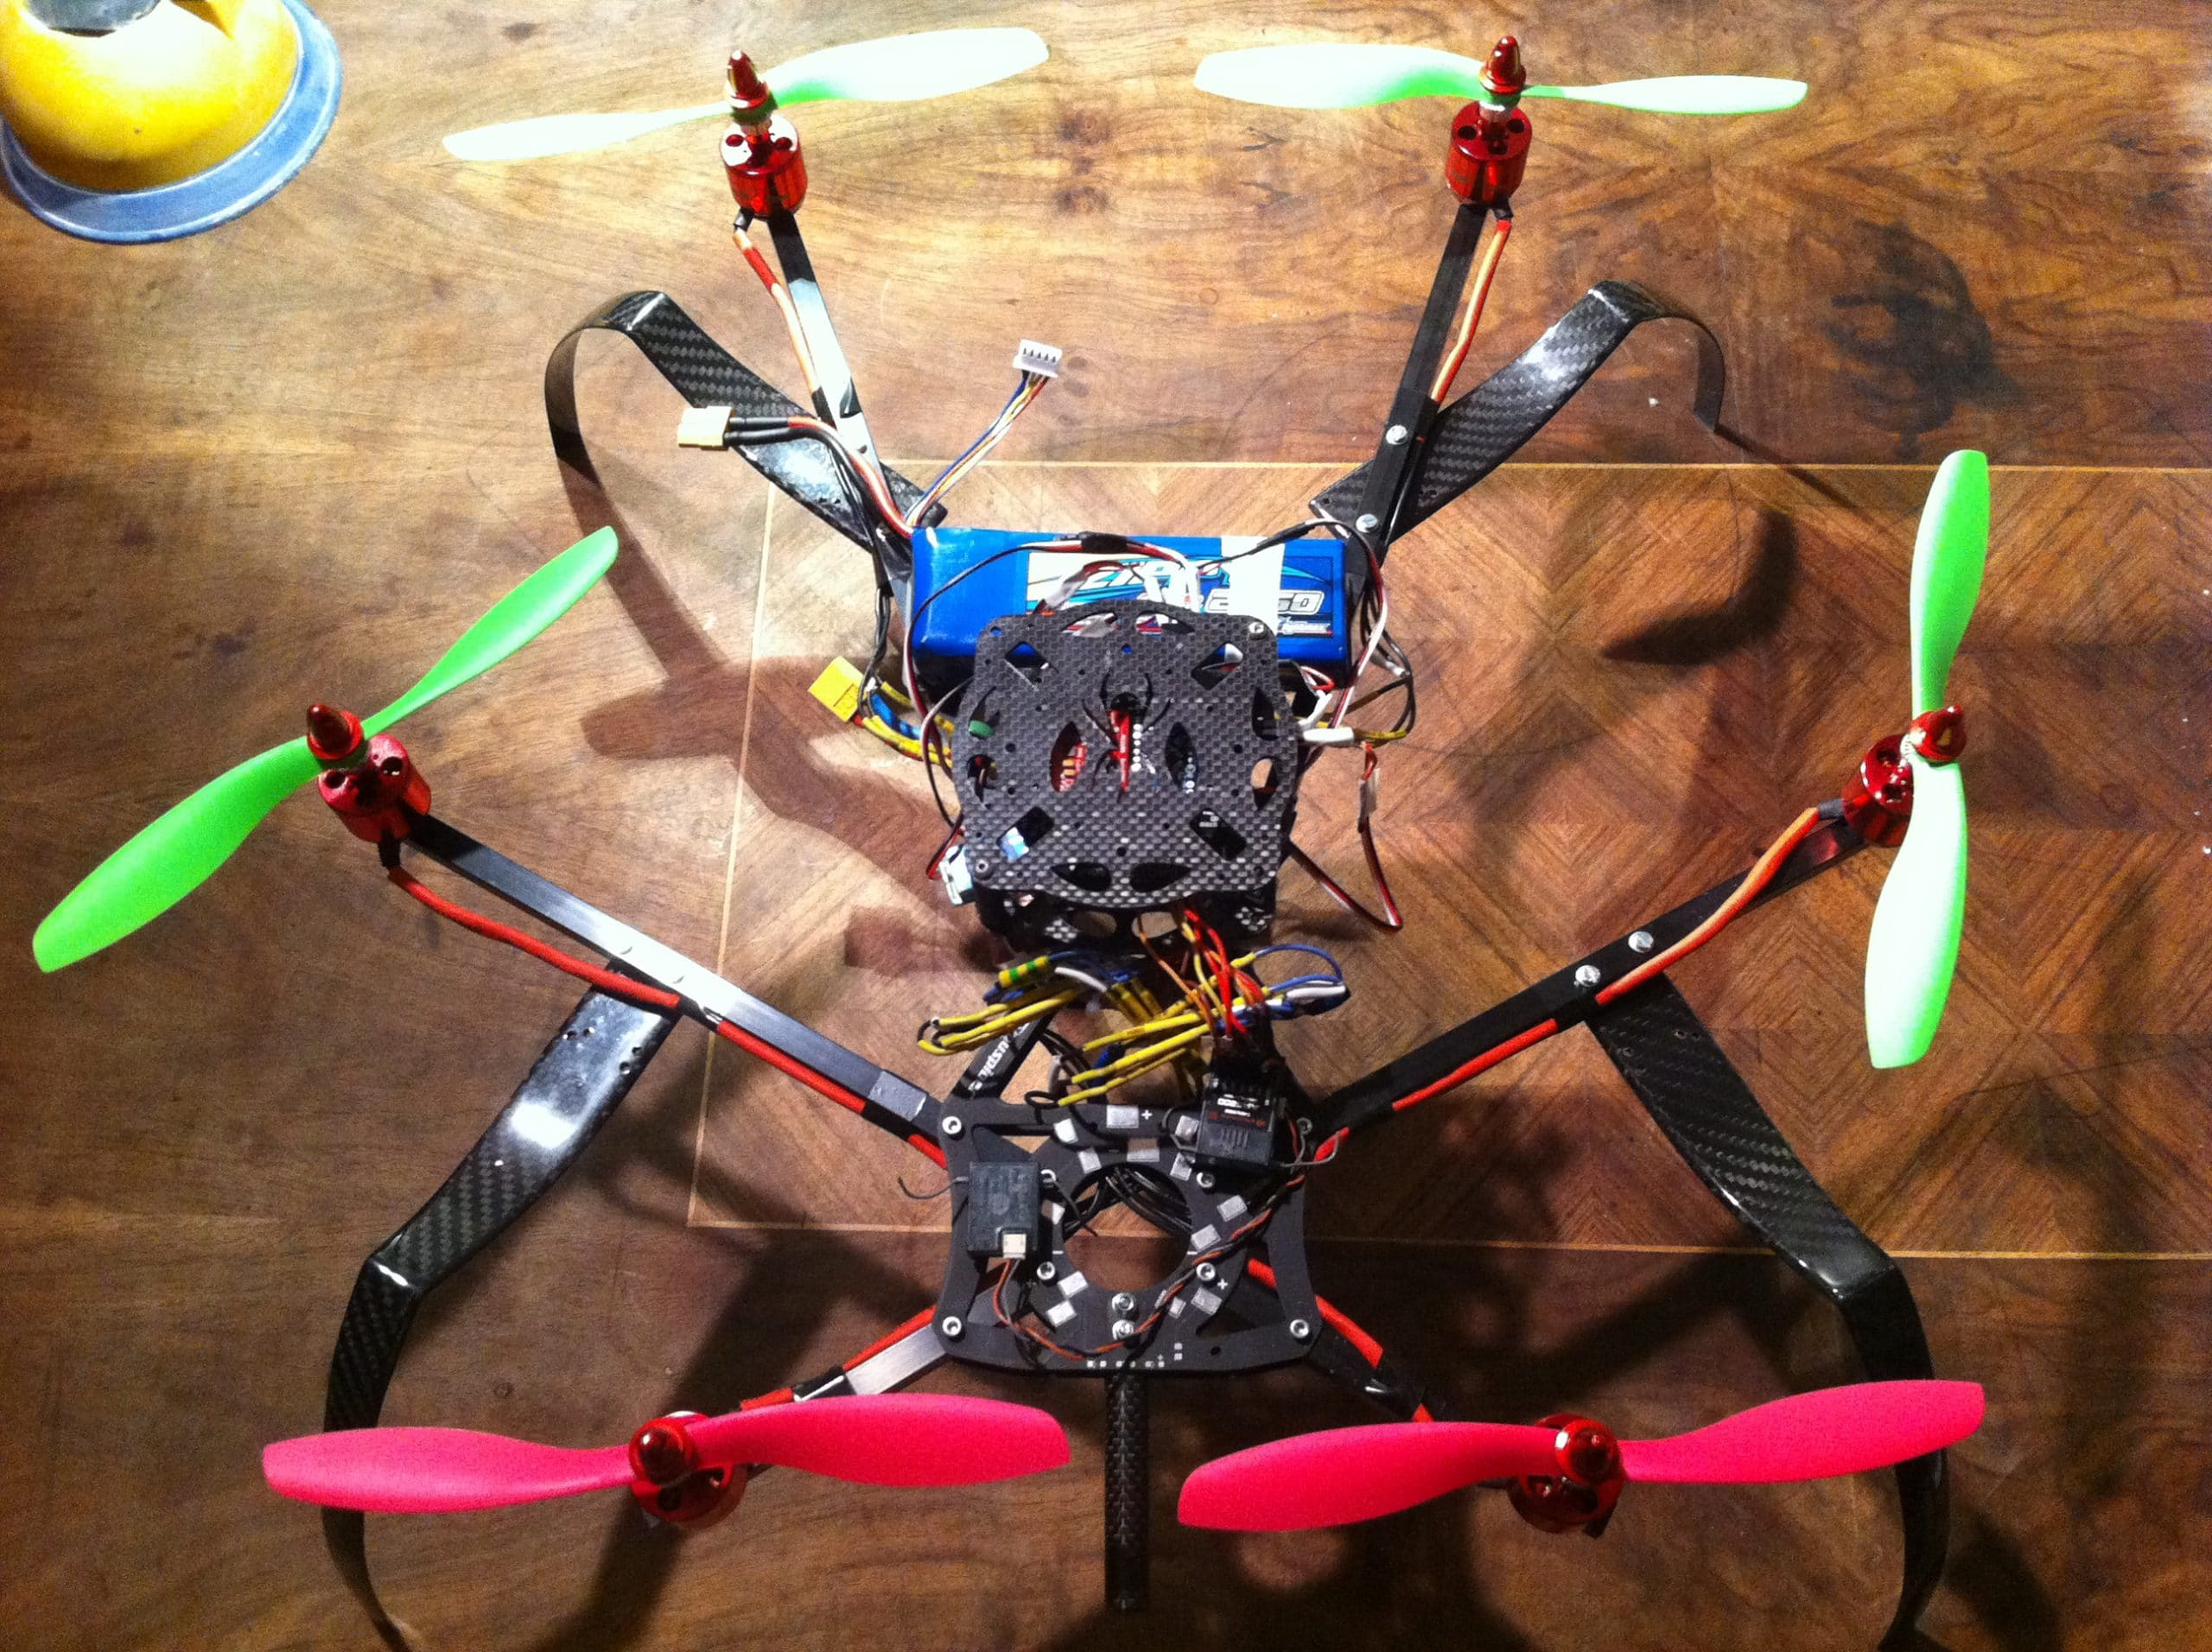 tricopter - frenchi drone